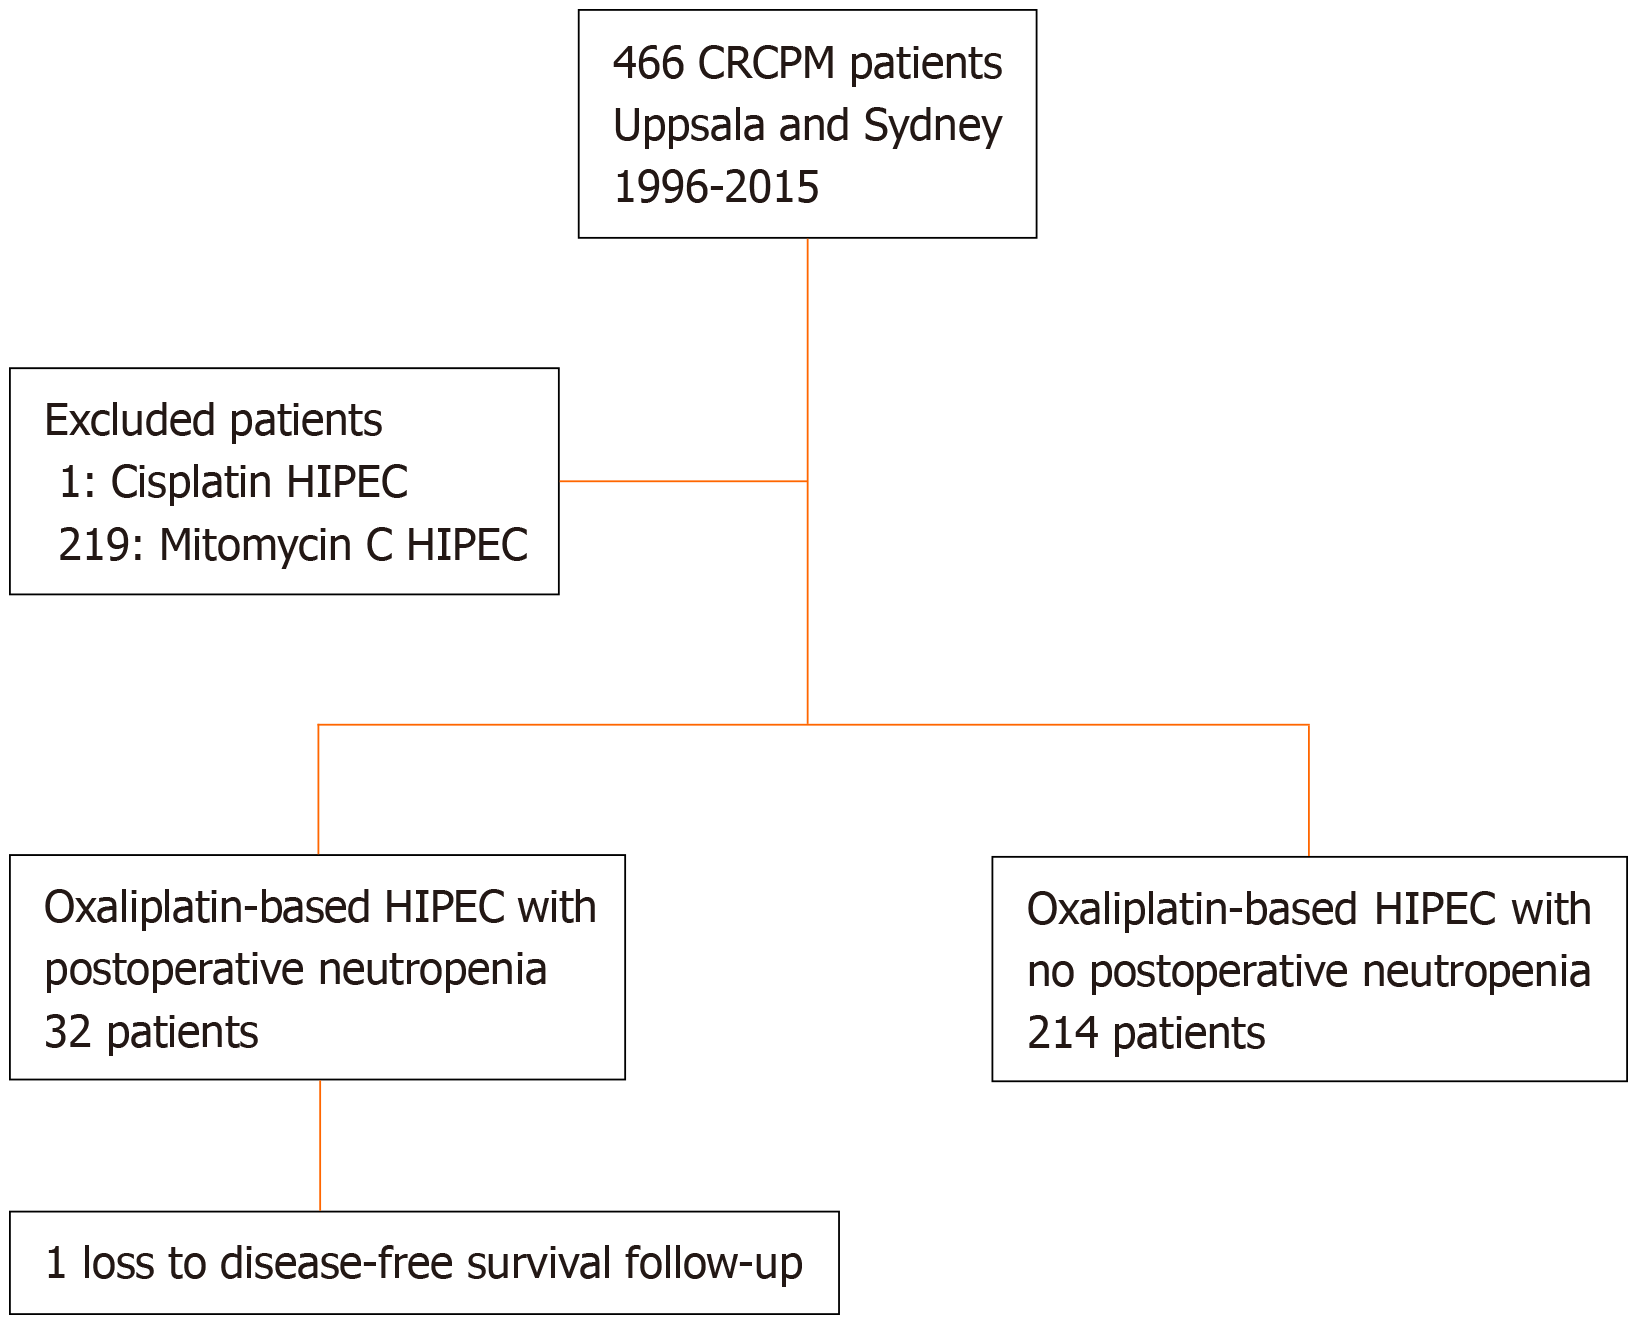 Neutropenia In Colorectal Cancer Treated With Oxaliplatin Based Hyperthermic Intraperitoneal Chemotherapy An Observational Cohort Study